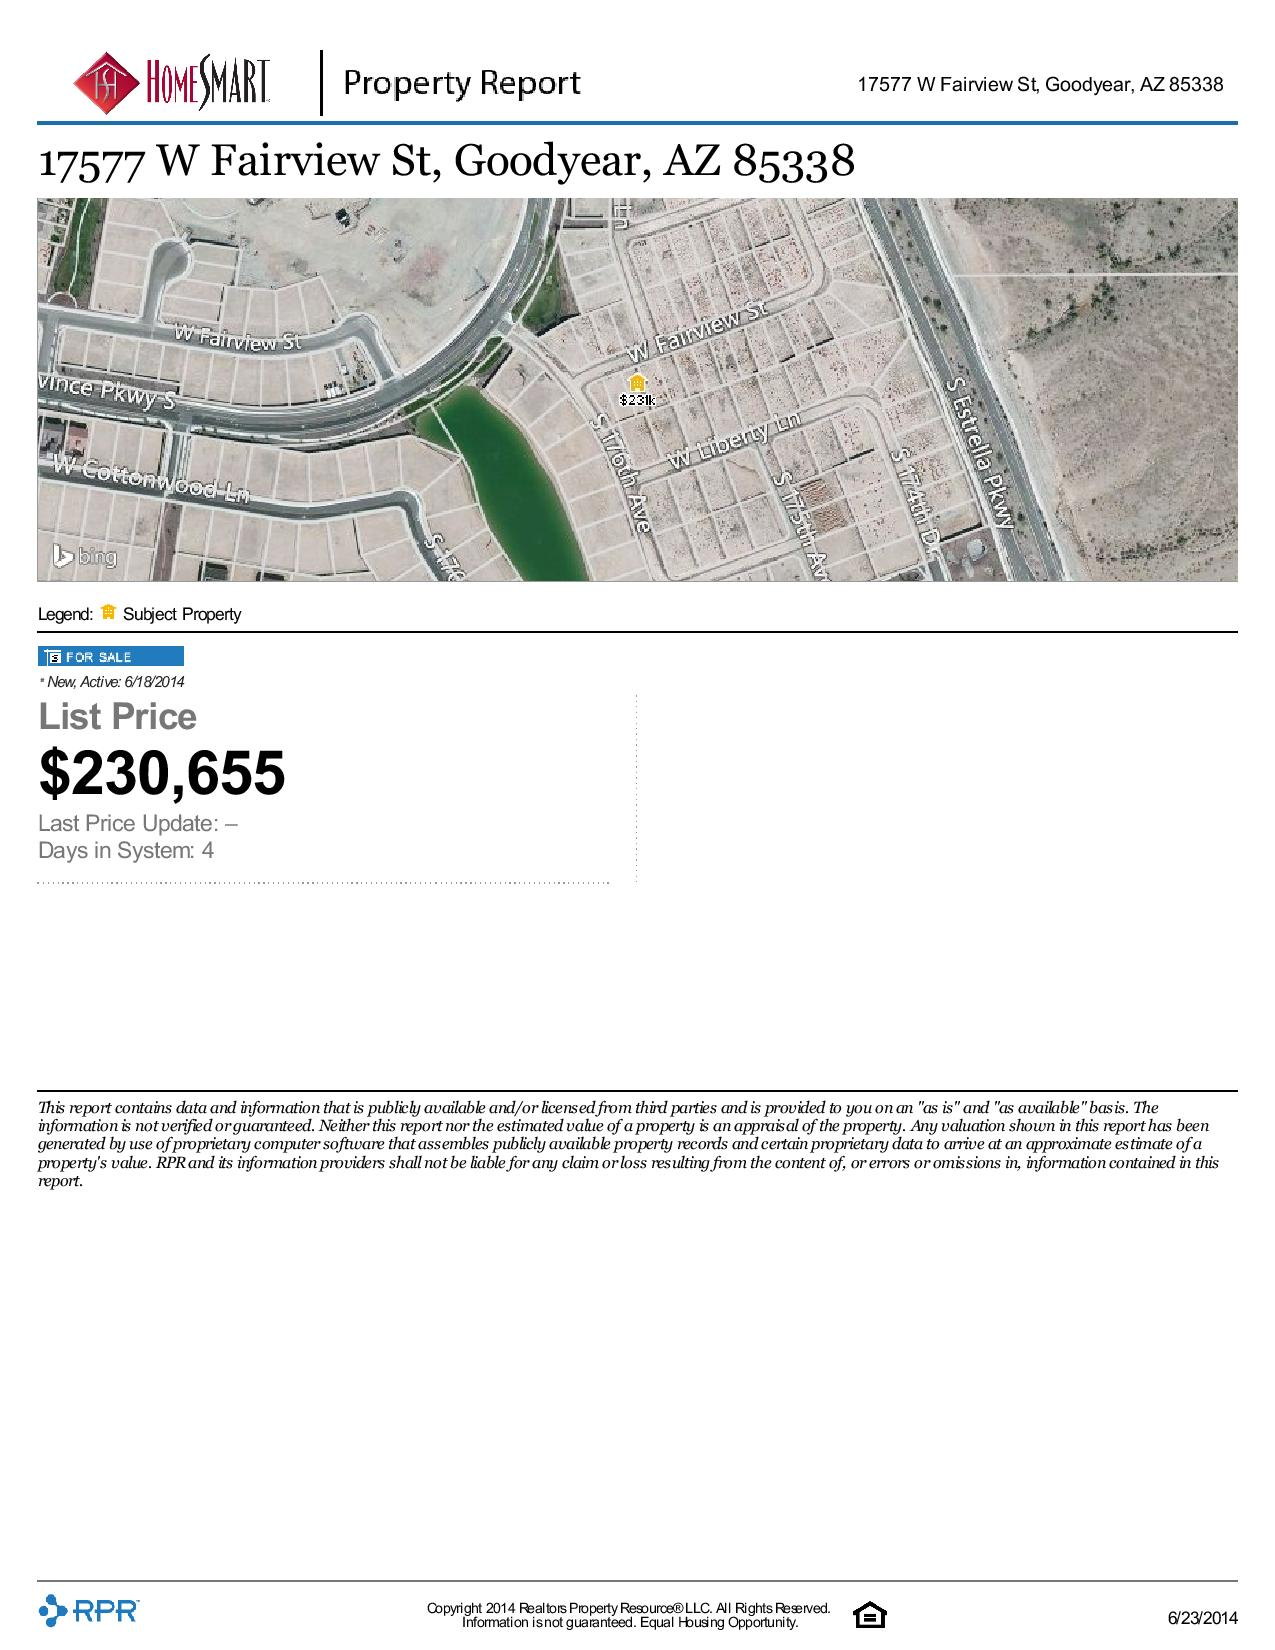 17577-W-Fairview-St-Goodyear-AZ-85338-page-002